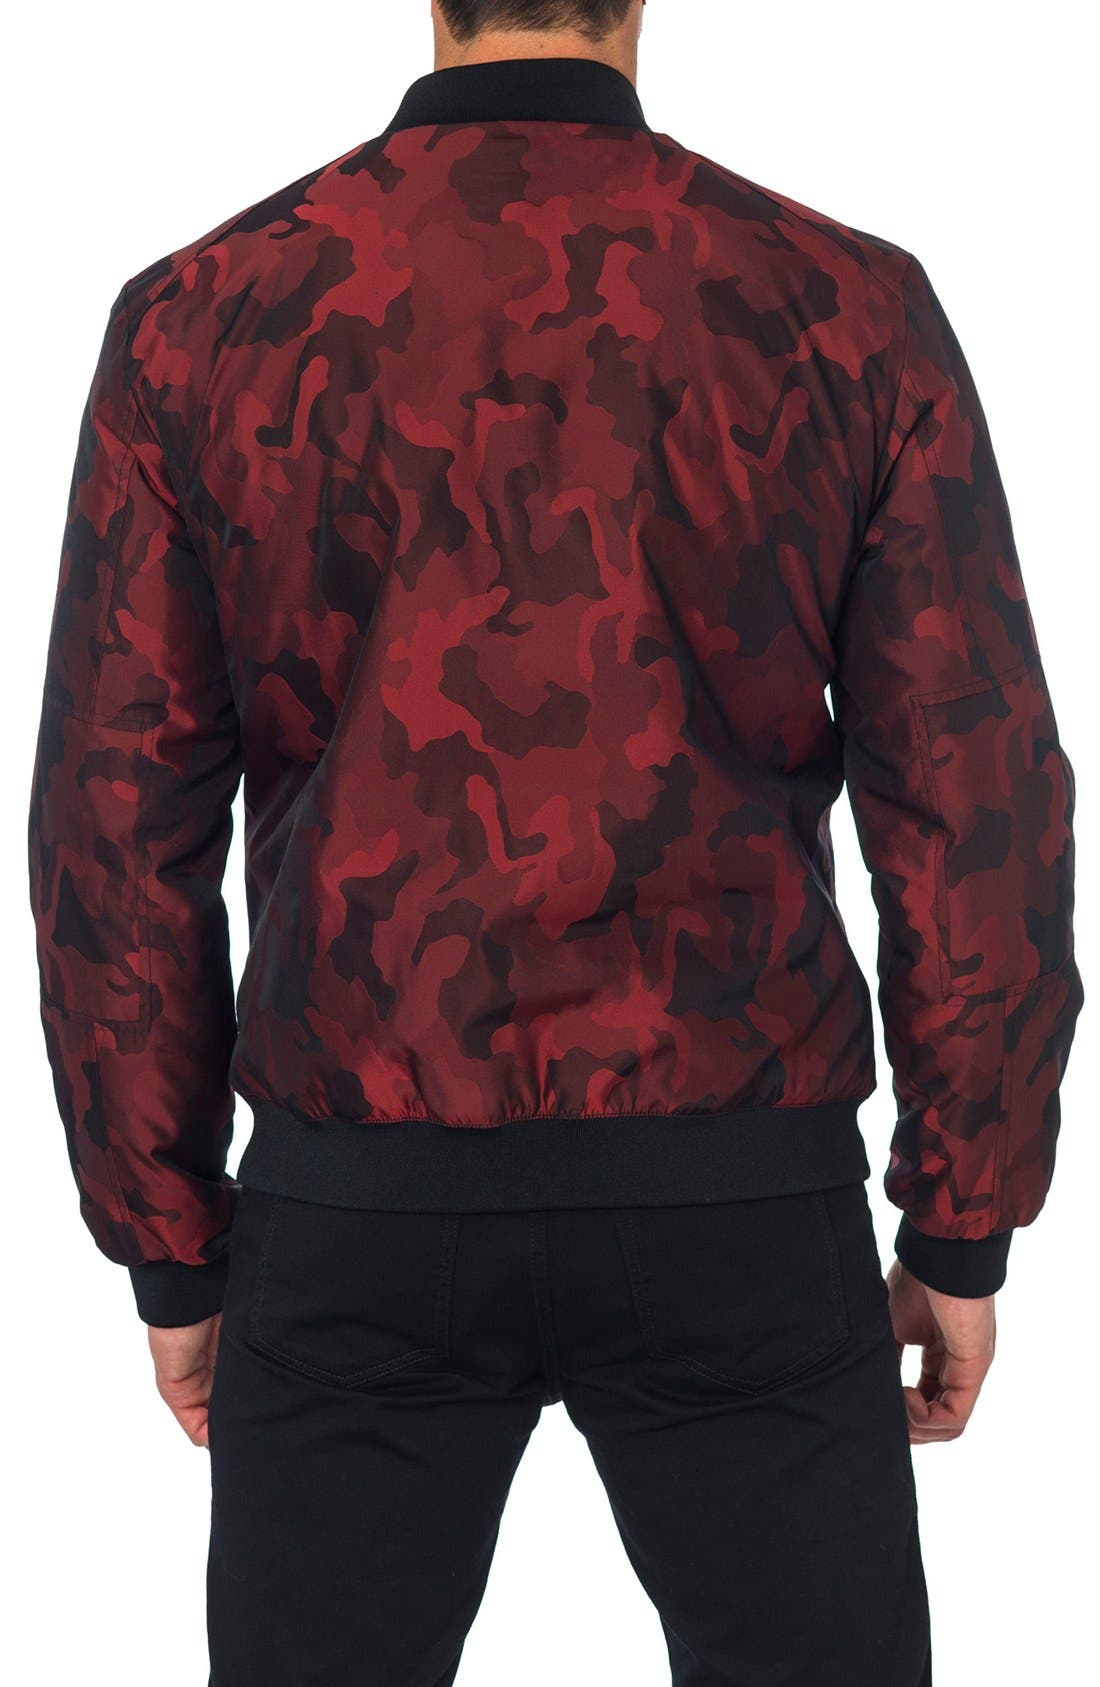 New York Reversible Bomber Jacket,                             Alternate thumbnail 2, color,                             Red Camo/ Black Quilted